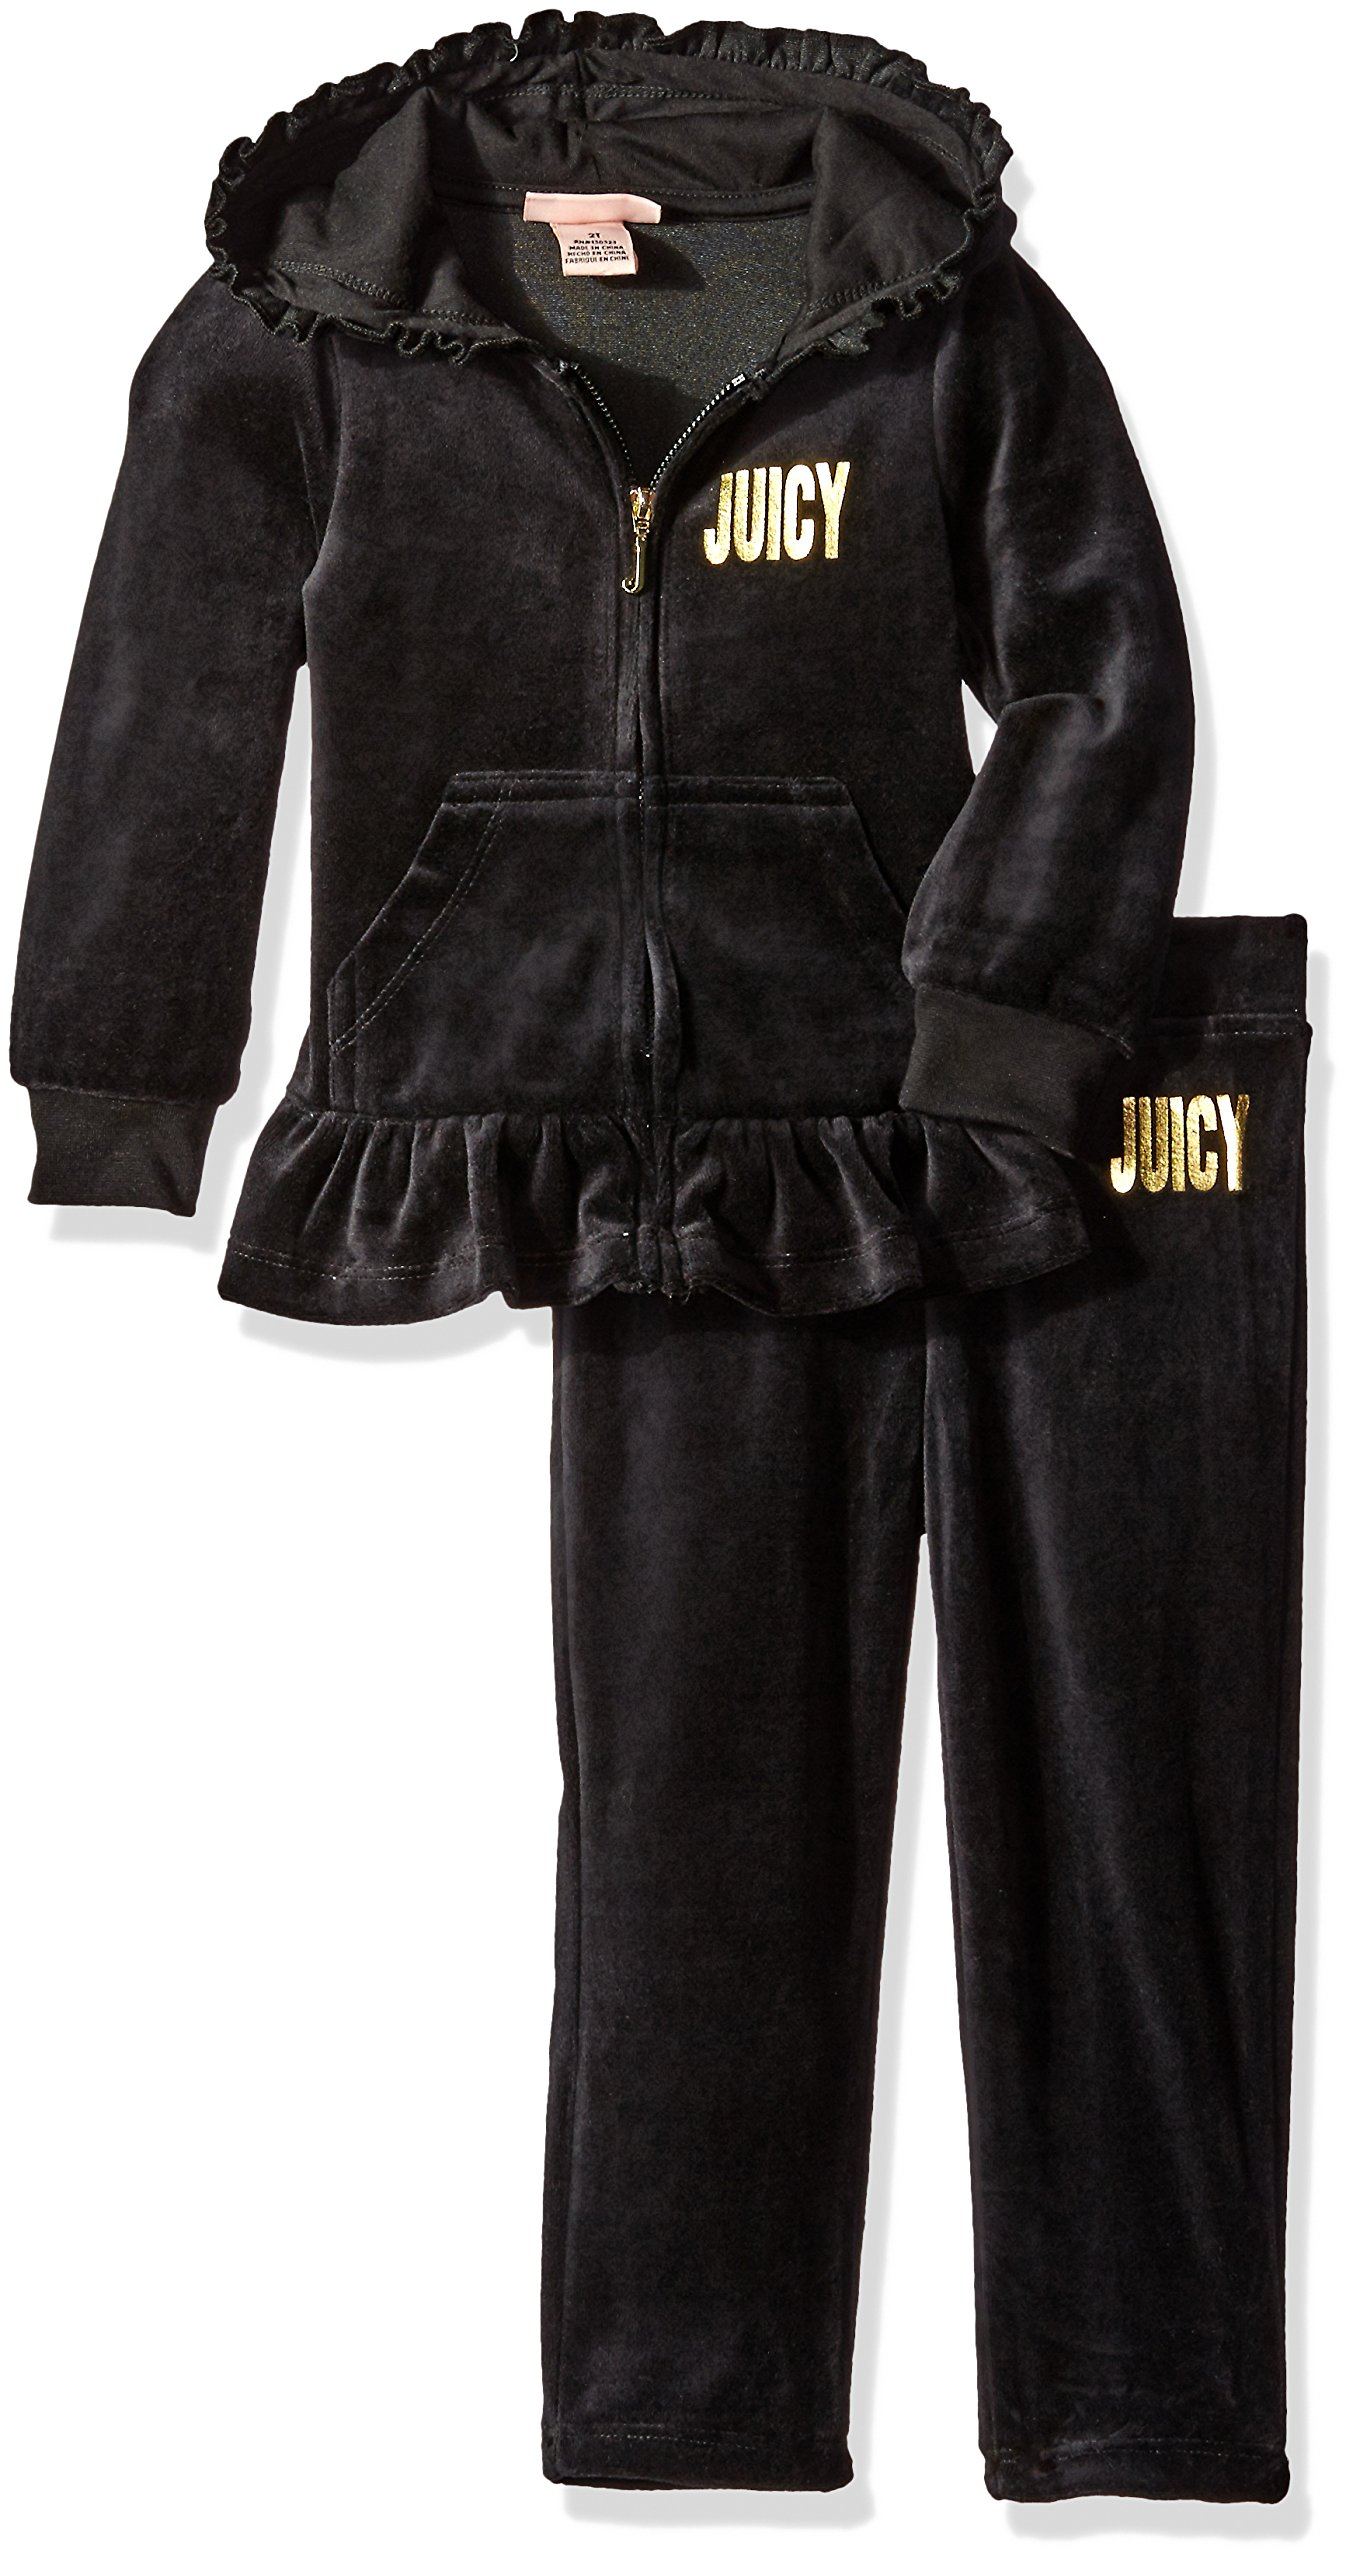 Juicy Couture Little Girls' Toddler 2 Piece Velour Hooded Jacket and Pant Set, Black, 3T